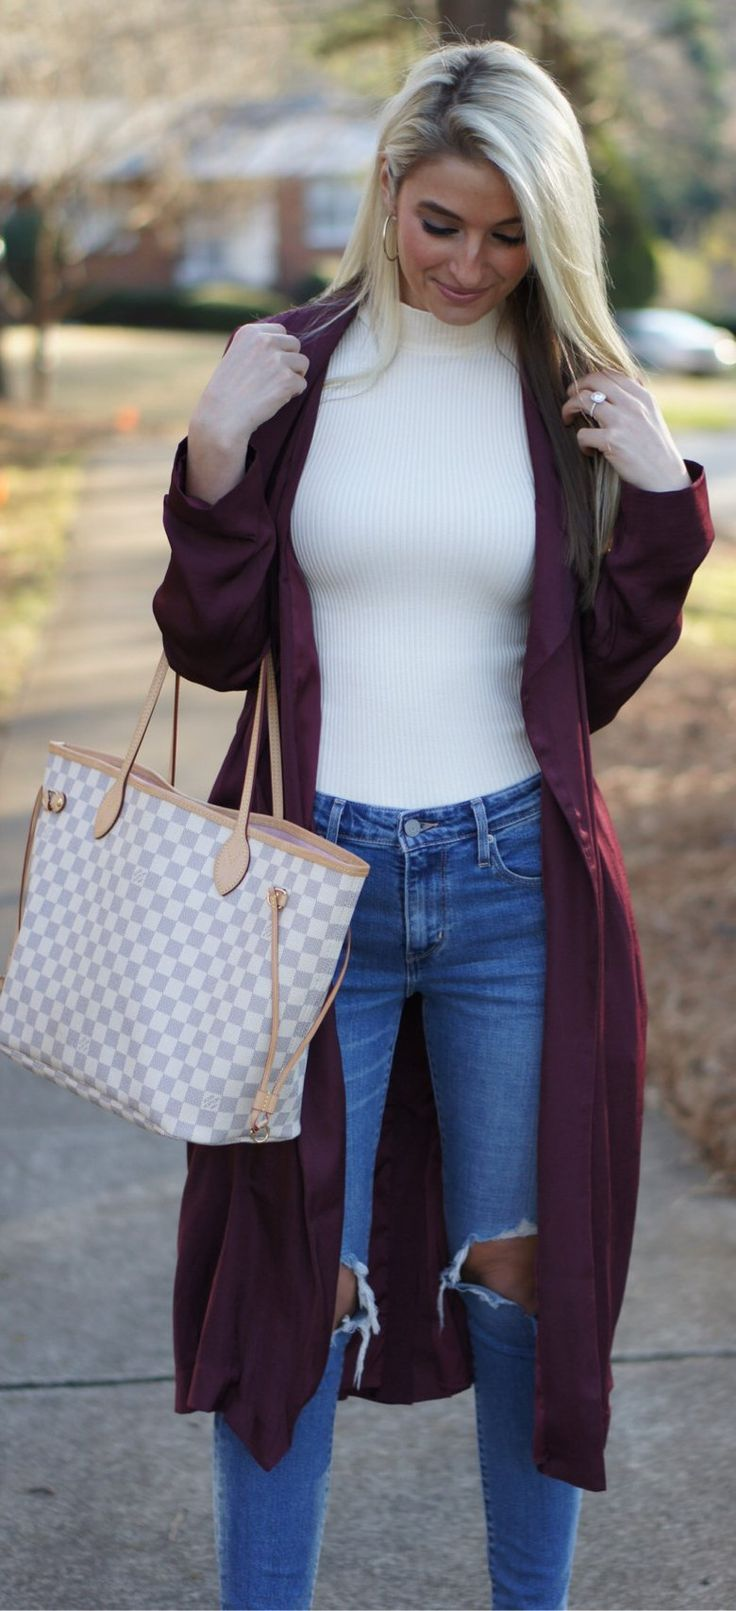 #winter #outfits /  Burgundy Coat / White Turtleneck / Destroyed Skinny Jeans/ White & Grey Checked Tote Bag